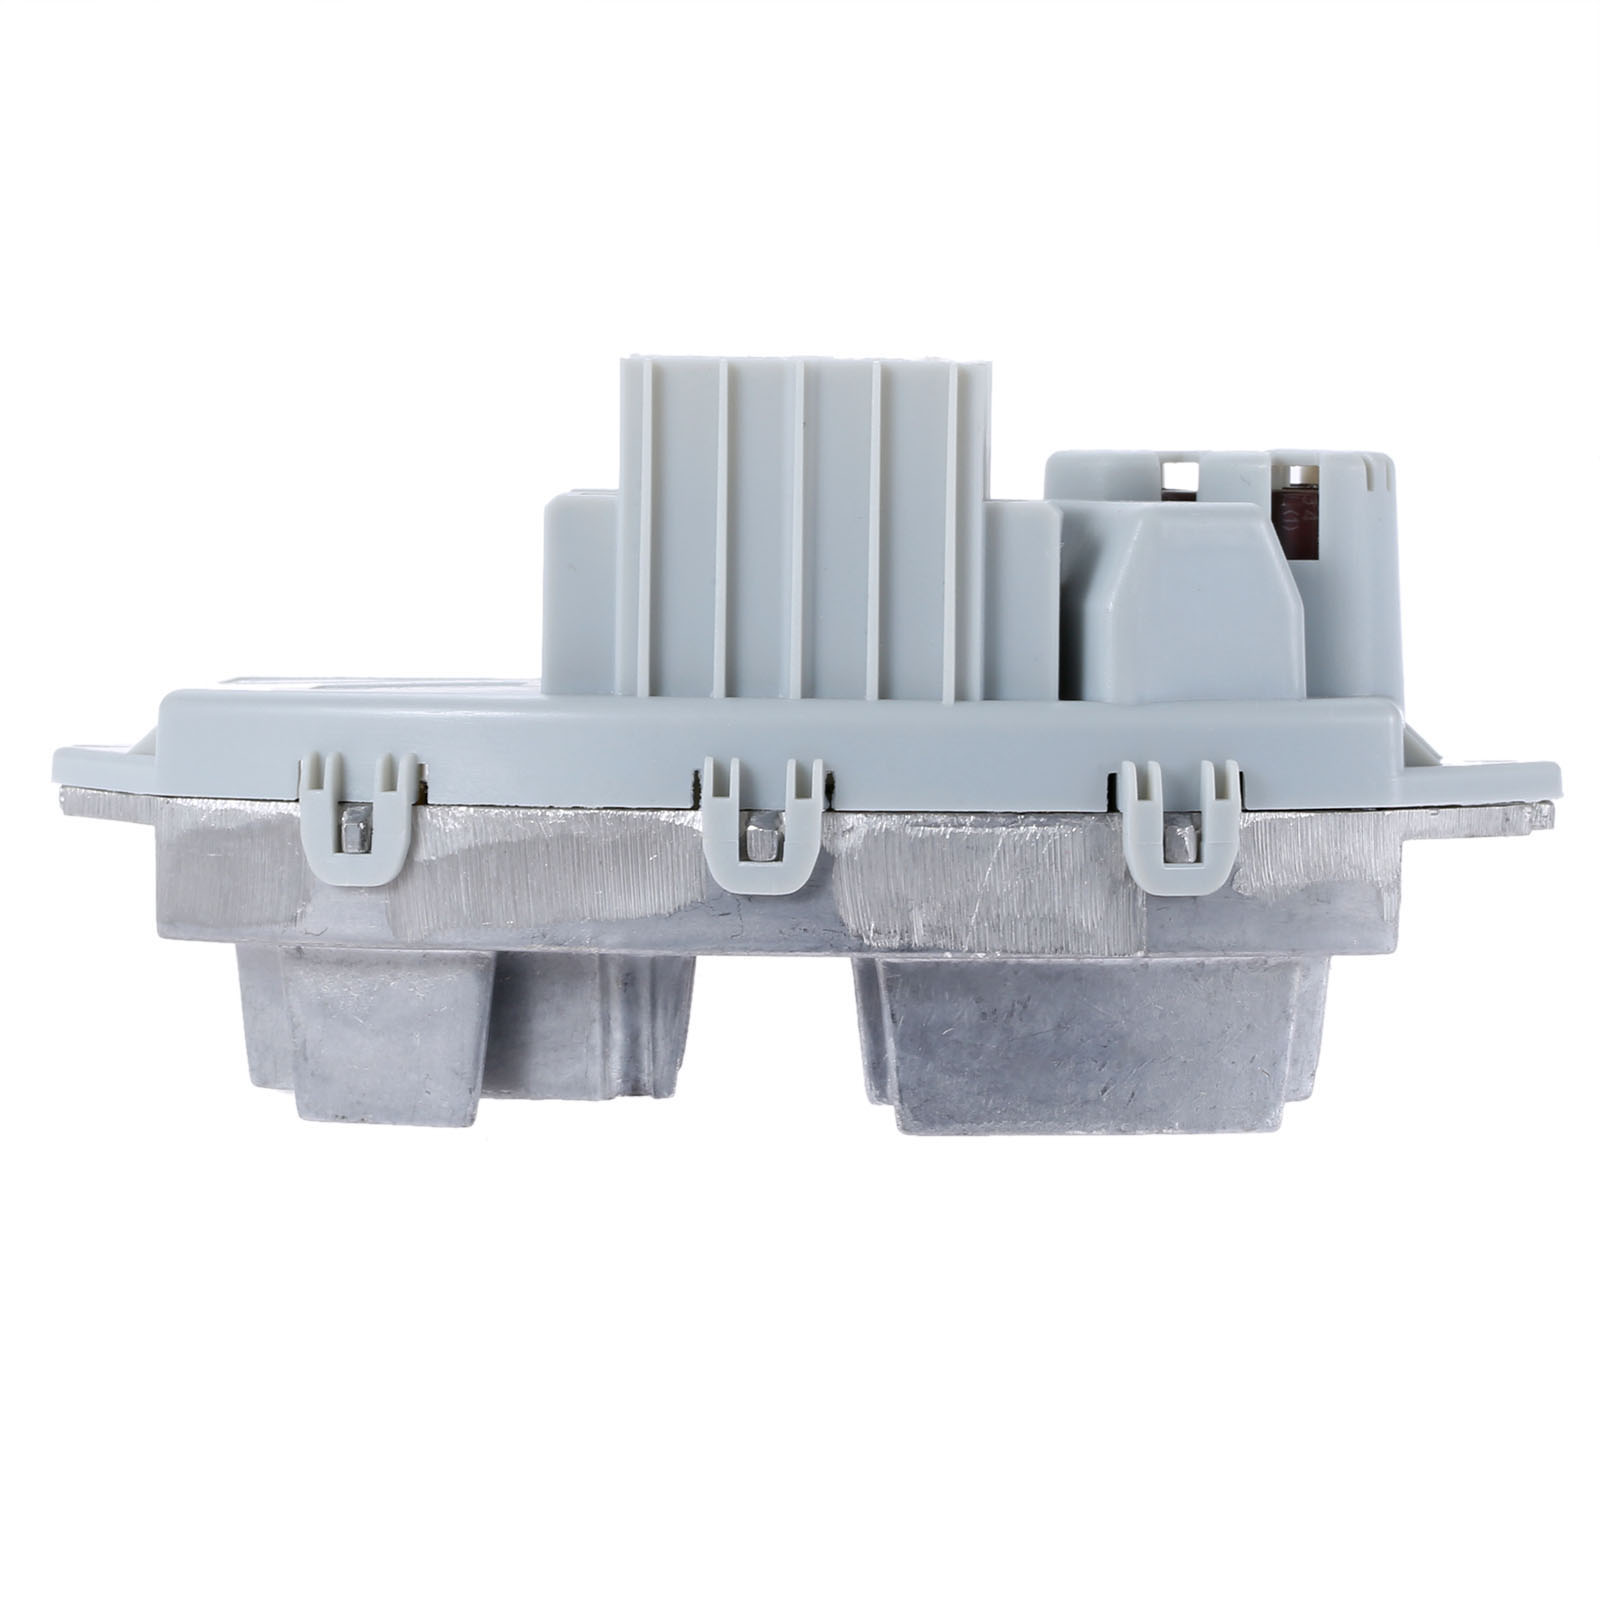 Image 1 - Yetaha 64119146765 New Blower Motor Resistor Regulator For BMW 120I 128I 130I 135I 323I 325CI 325I 328I 330CI 335I X1 X3 X5 X6-in Air-conditioning Installation from Automobiles & Motorcycles